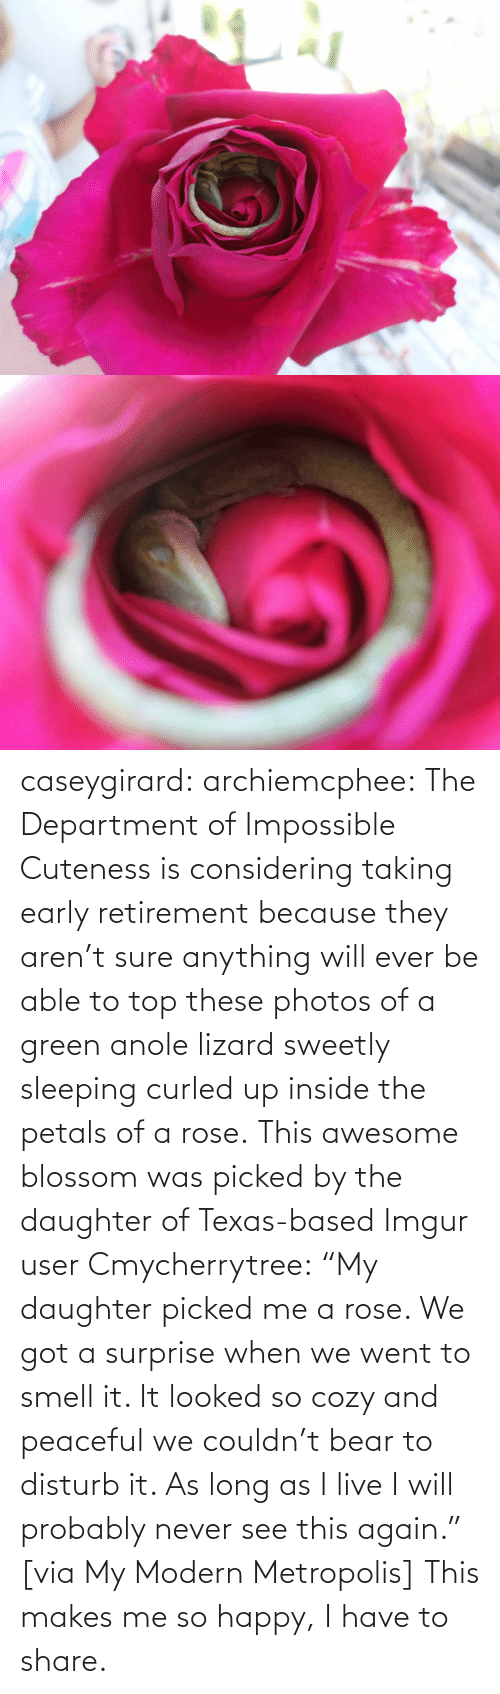 "Tagged: caseygirard:  archiemcphee:   The Department of Impossible Cuteness is considering taking early retirement because they aren't sure anything will ever be able to top these photos of a green anole lizard sweetly sleeping curled up inside the petals of a rose. This awesome blossom was picked by the daughter of Texas-based Imgur user Cmycherrytree: ""My daughter picked me a rose. We got a surprise when we went to smell it. It looked so cozy and peaceful we couldn't bear to disturb it. As long as I live I will probably never see this again."" [via My Modern Metropolis]   This makes me so happy, I have to share."